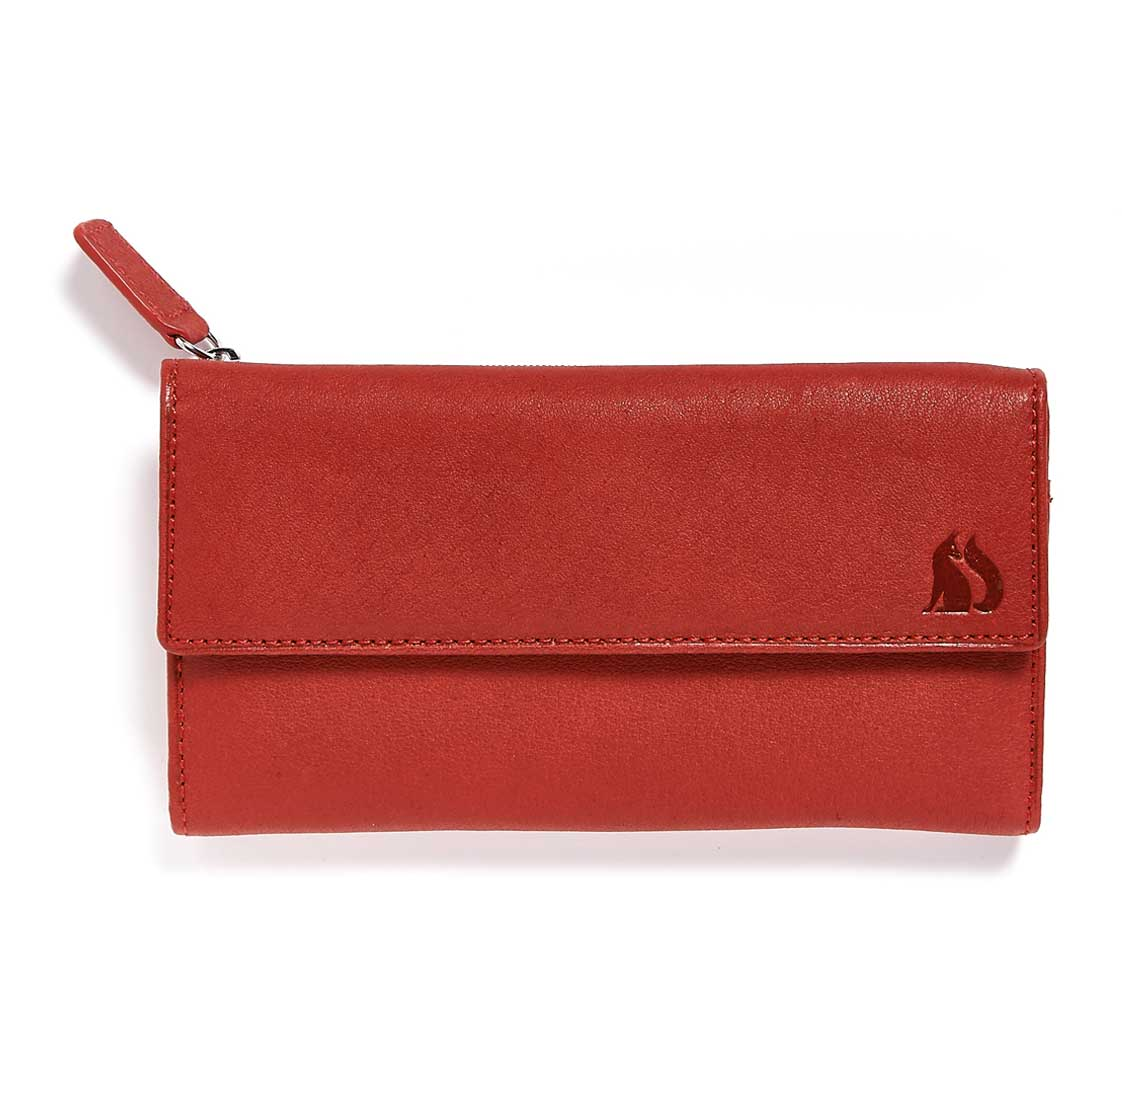 Foxfield Red Leather Purse Windermere